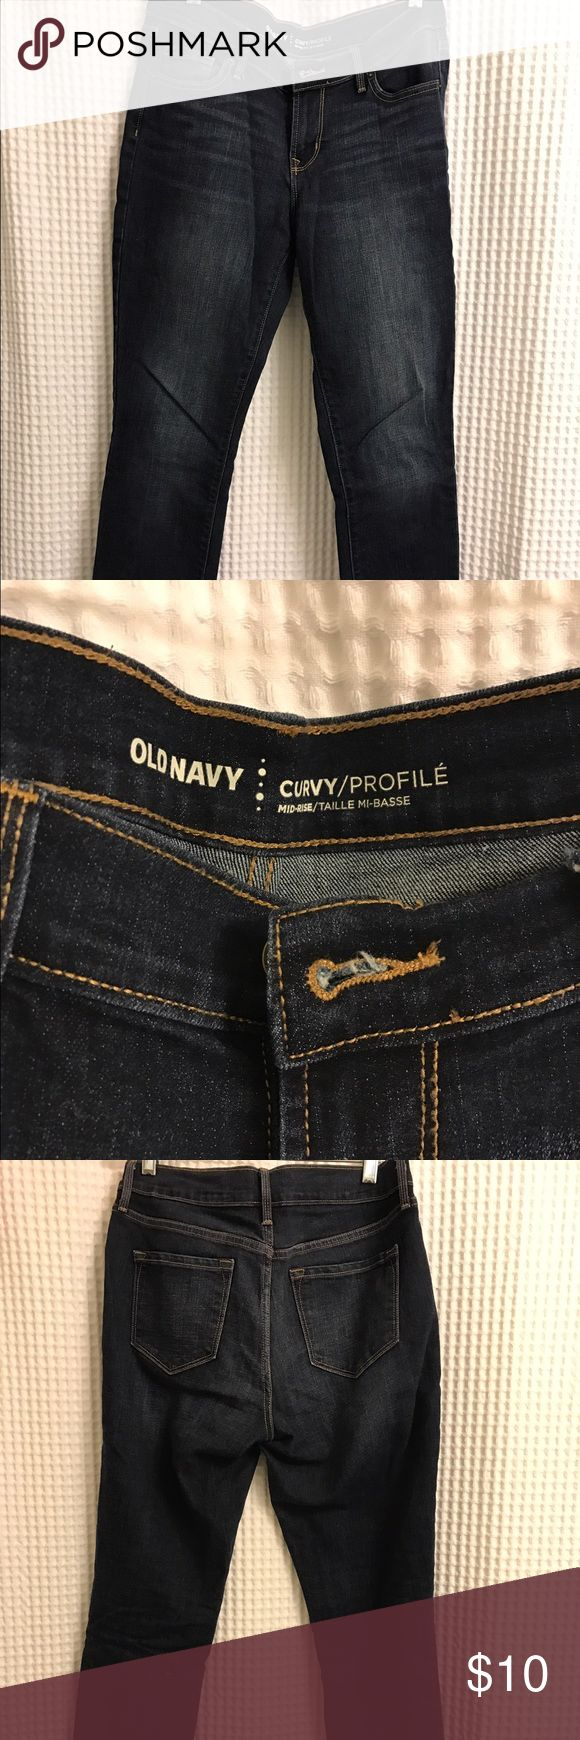 Old navy curvy jeans Old navy curvy jeans. Dark wash. Never worn and in excellent condition. GAP Pants Straight Leg